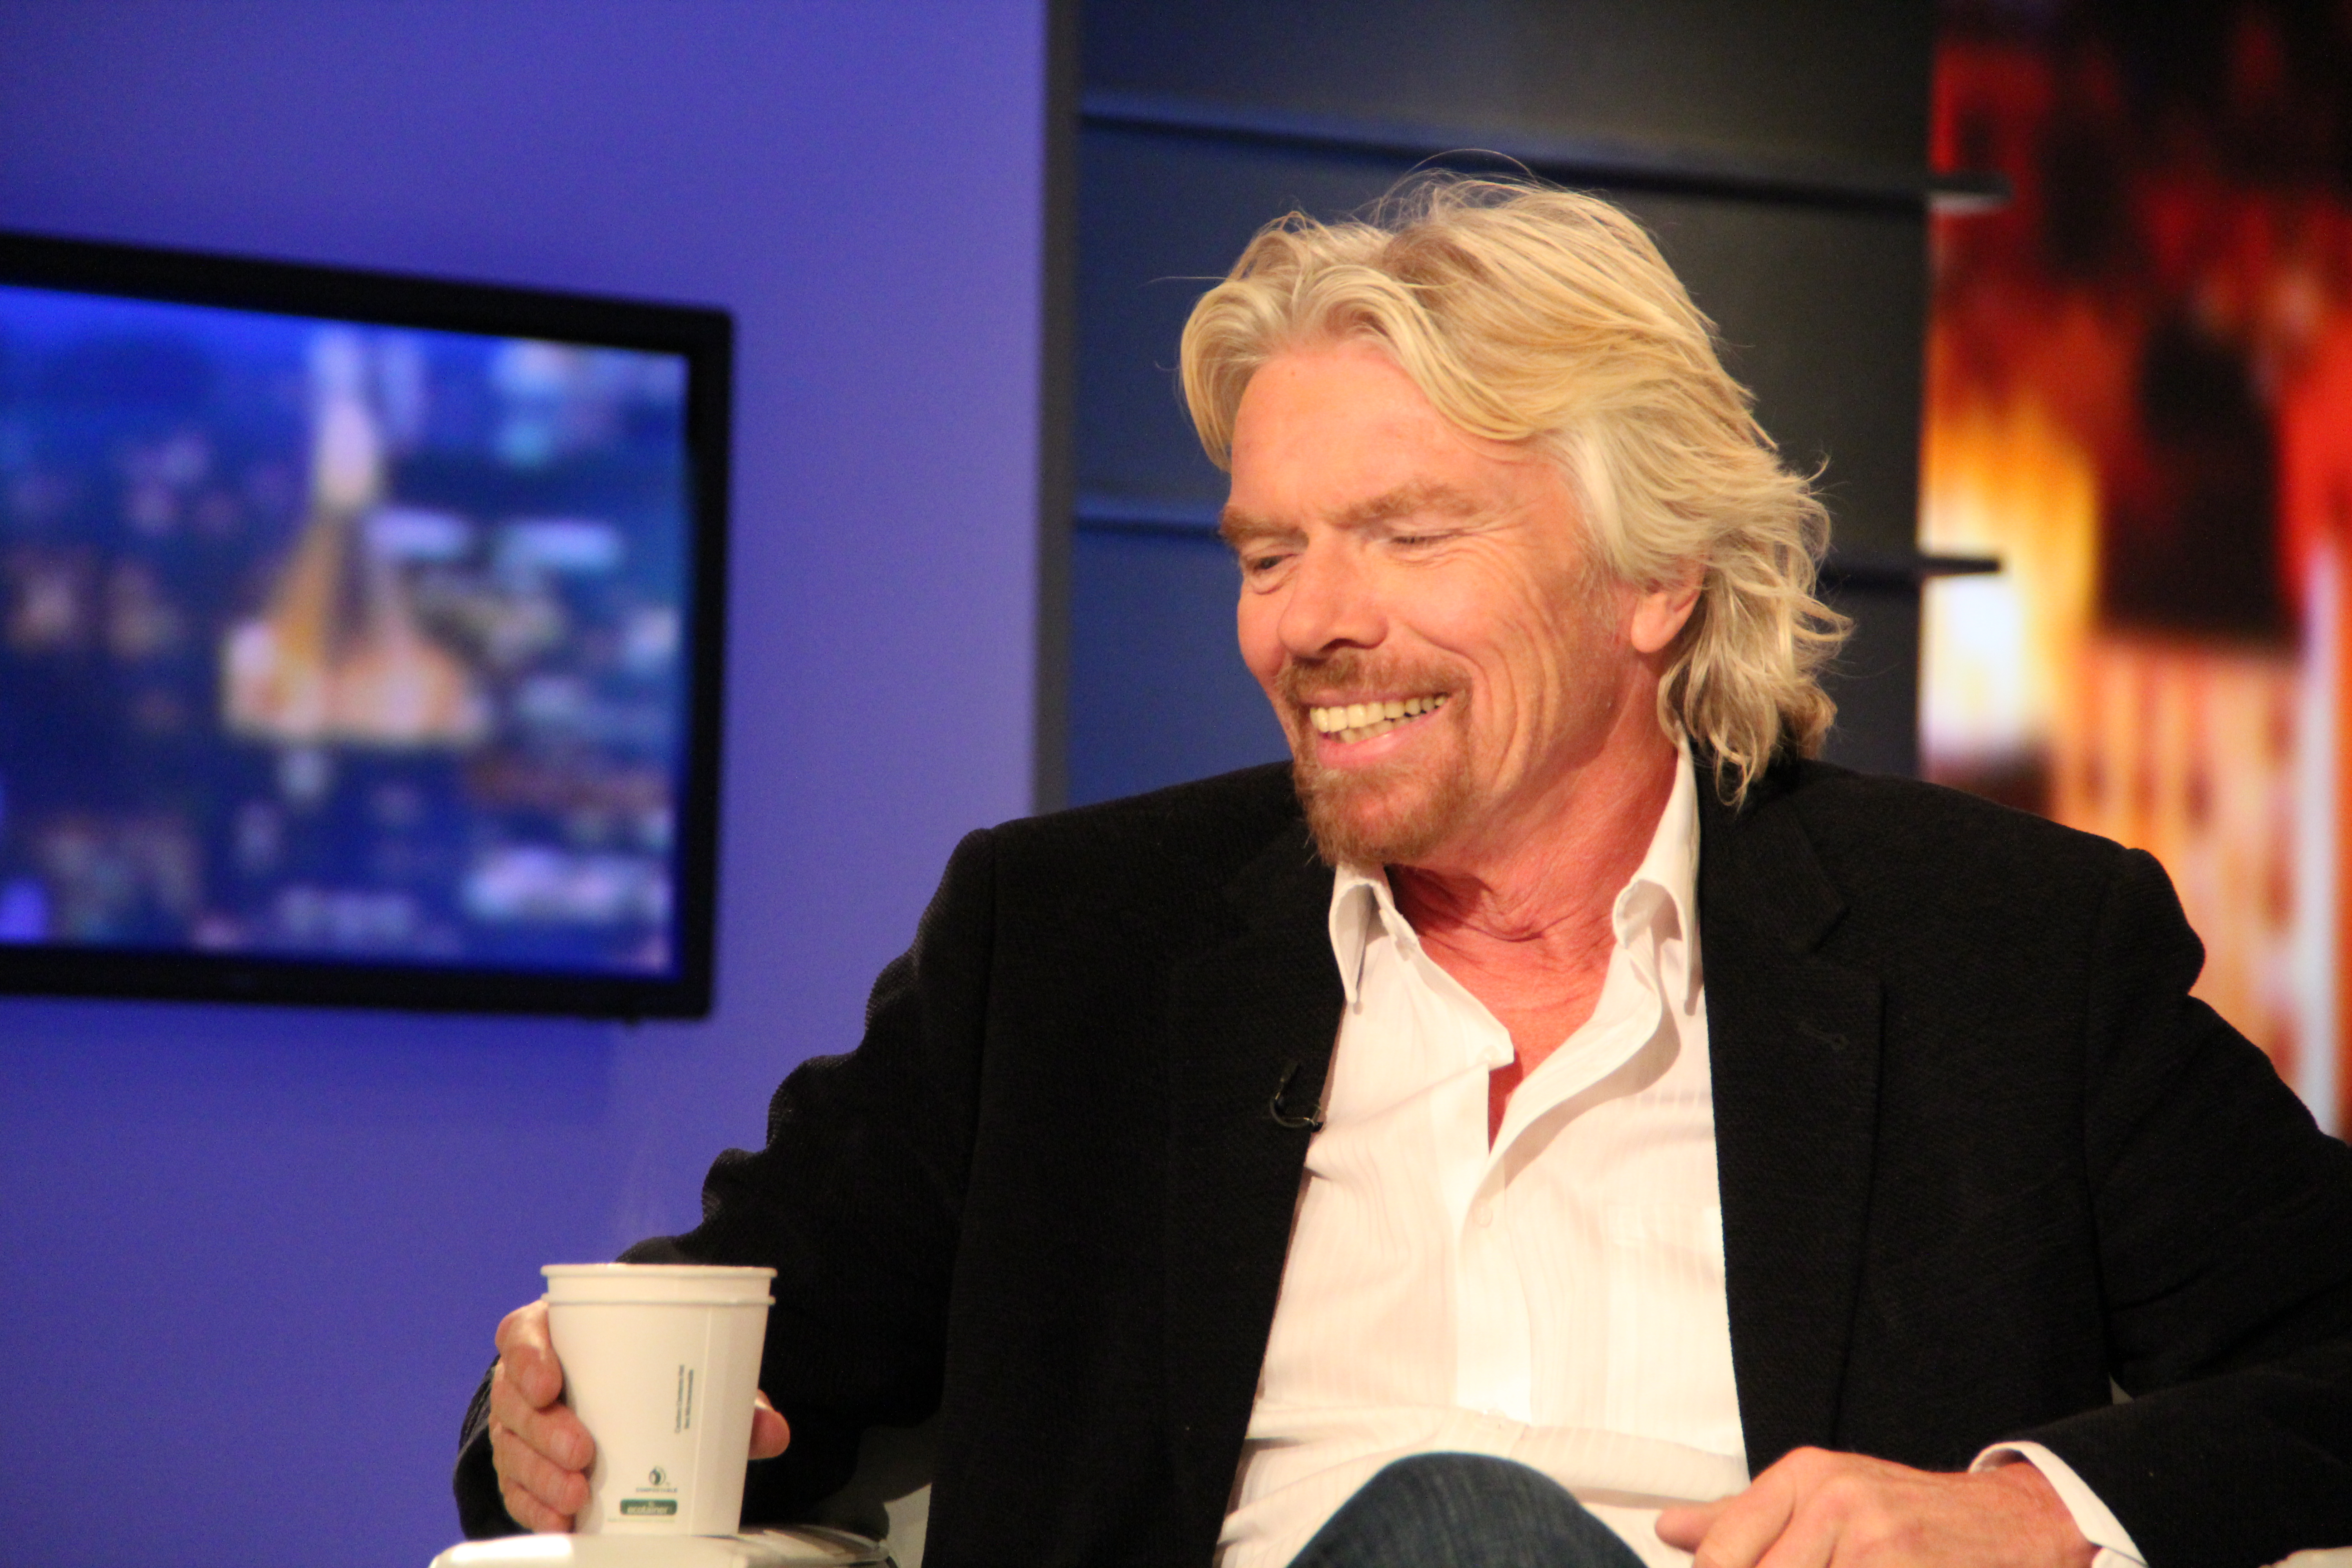 Richard Branson: 'The best businesses are born out of frustration'